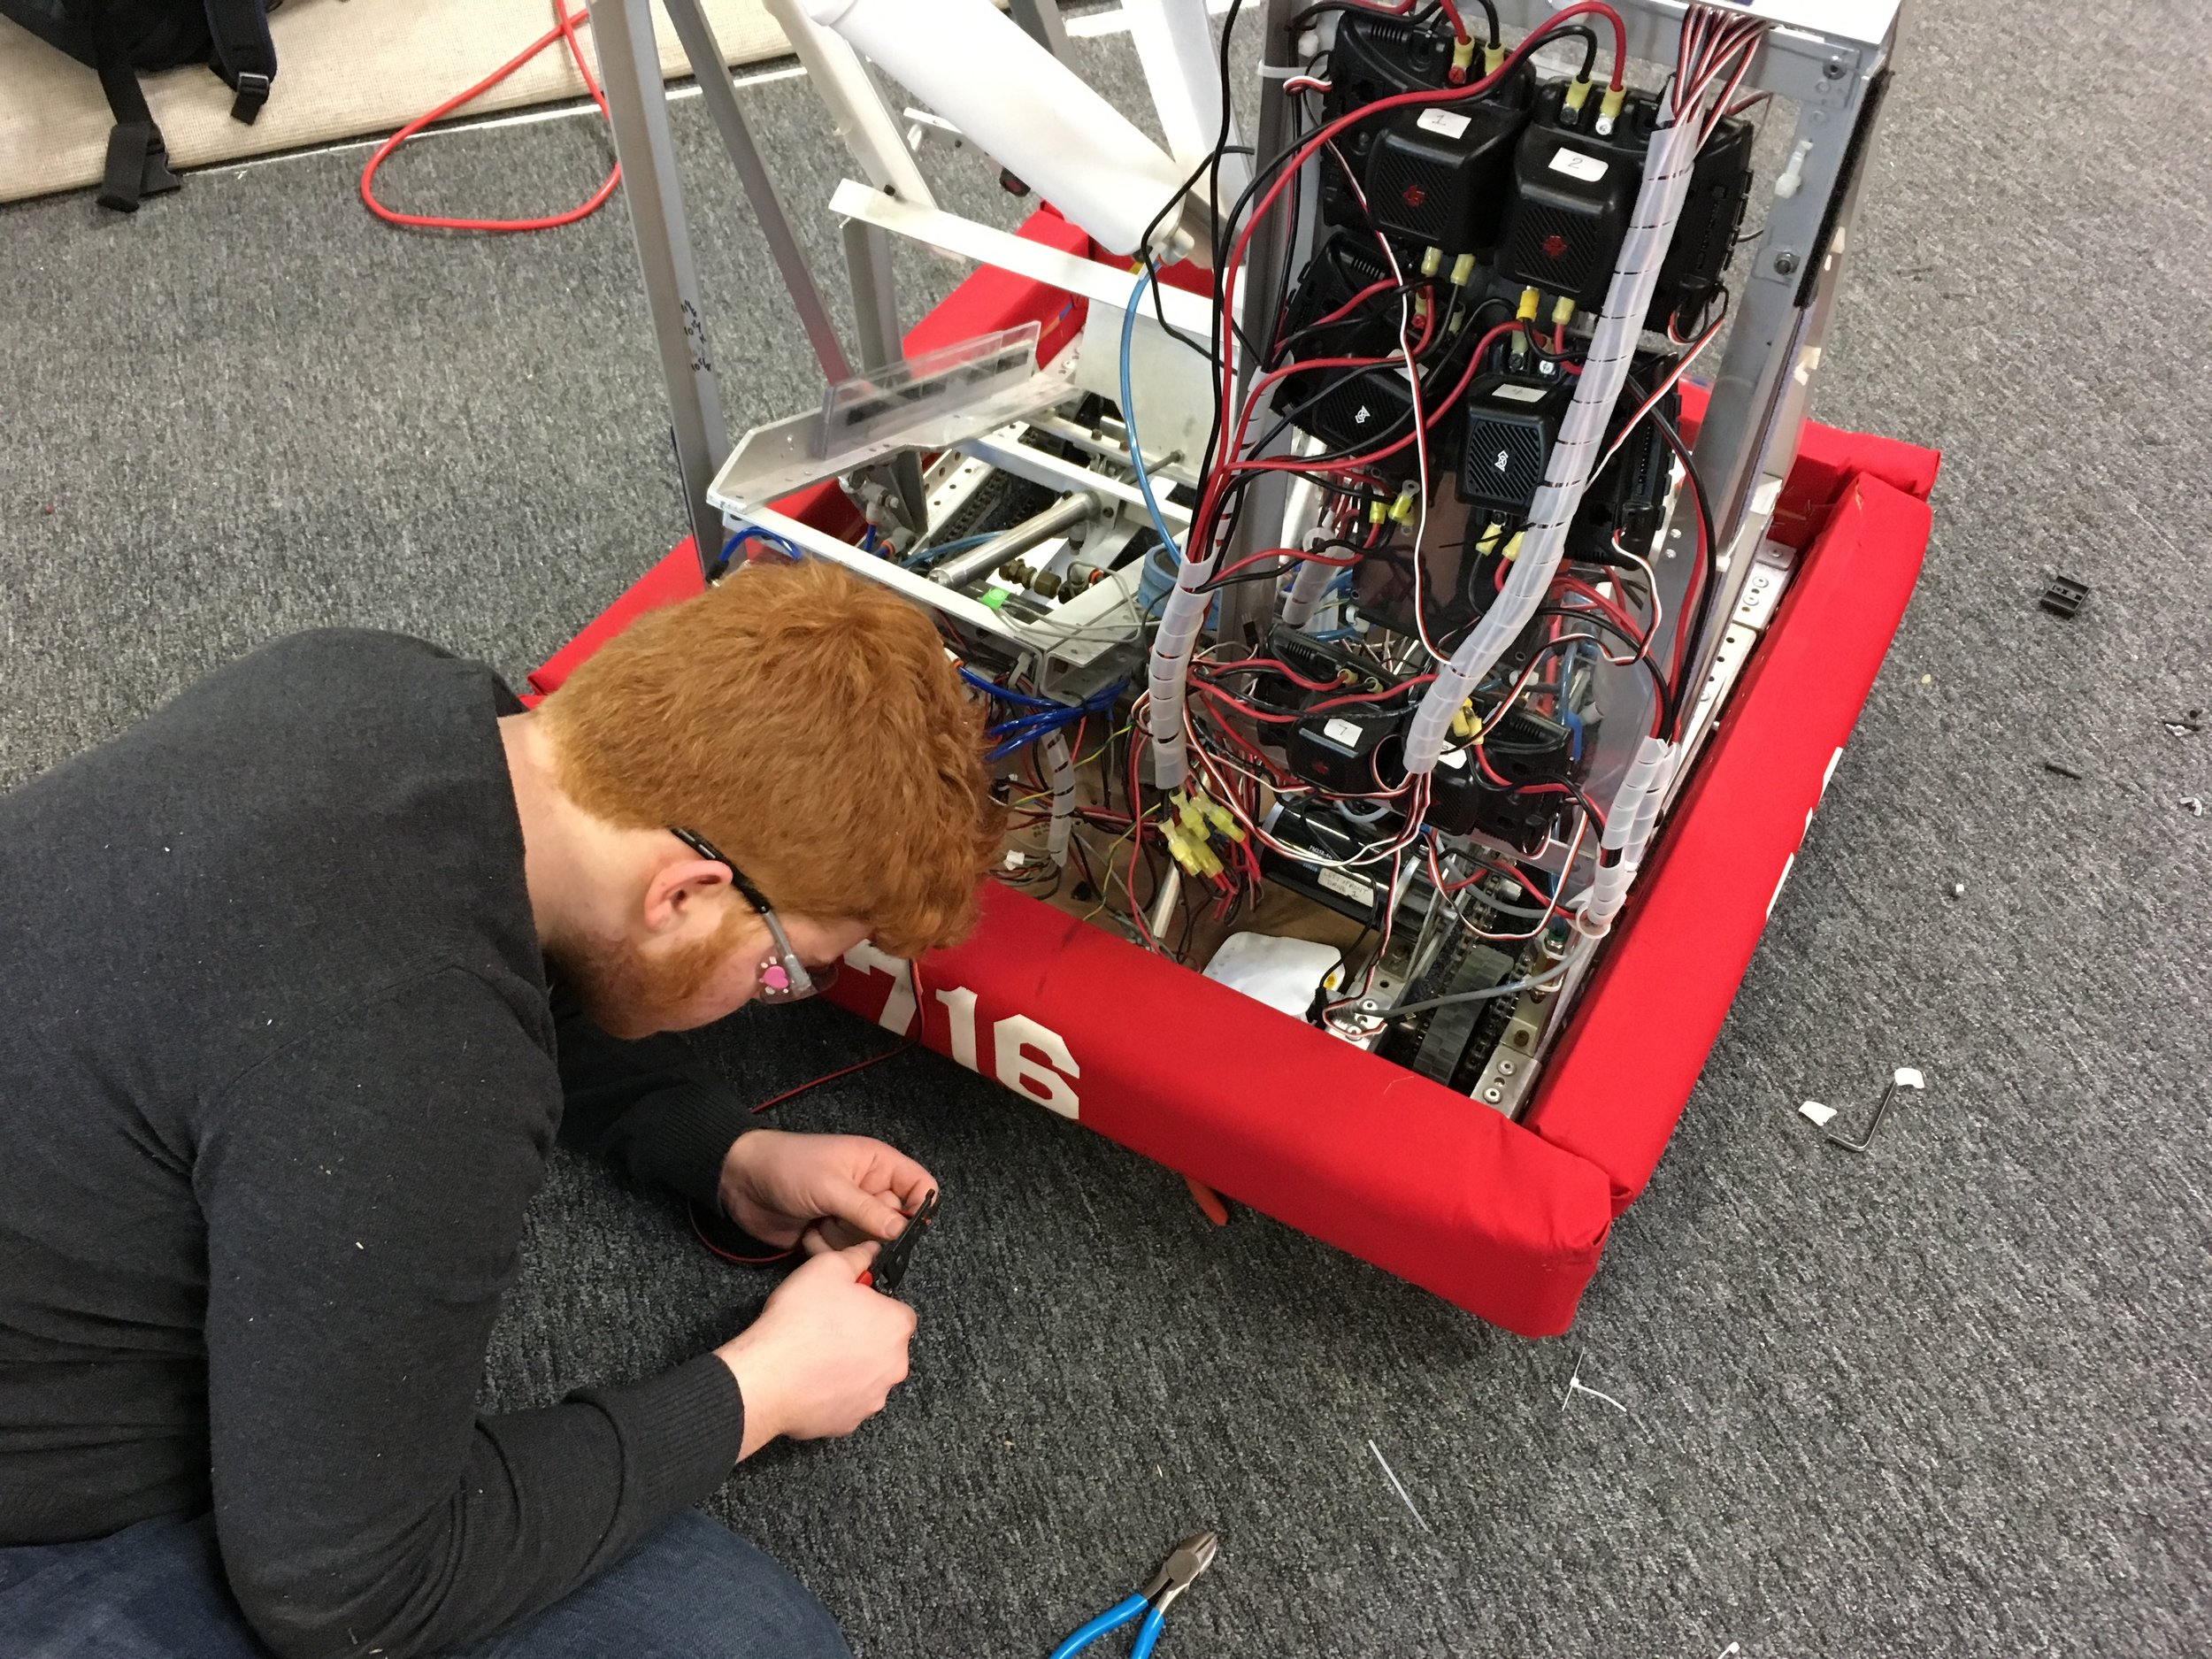 While our robot is being built, the programmers need a robot on which to test their code. One of our older robots is updated with current tech to serve as a test bed until the build team completes the competition robot.